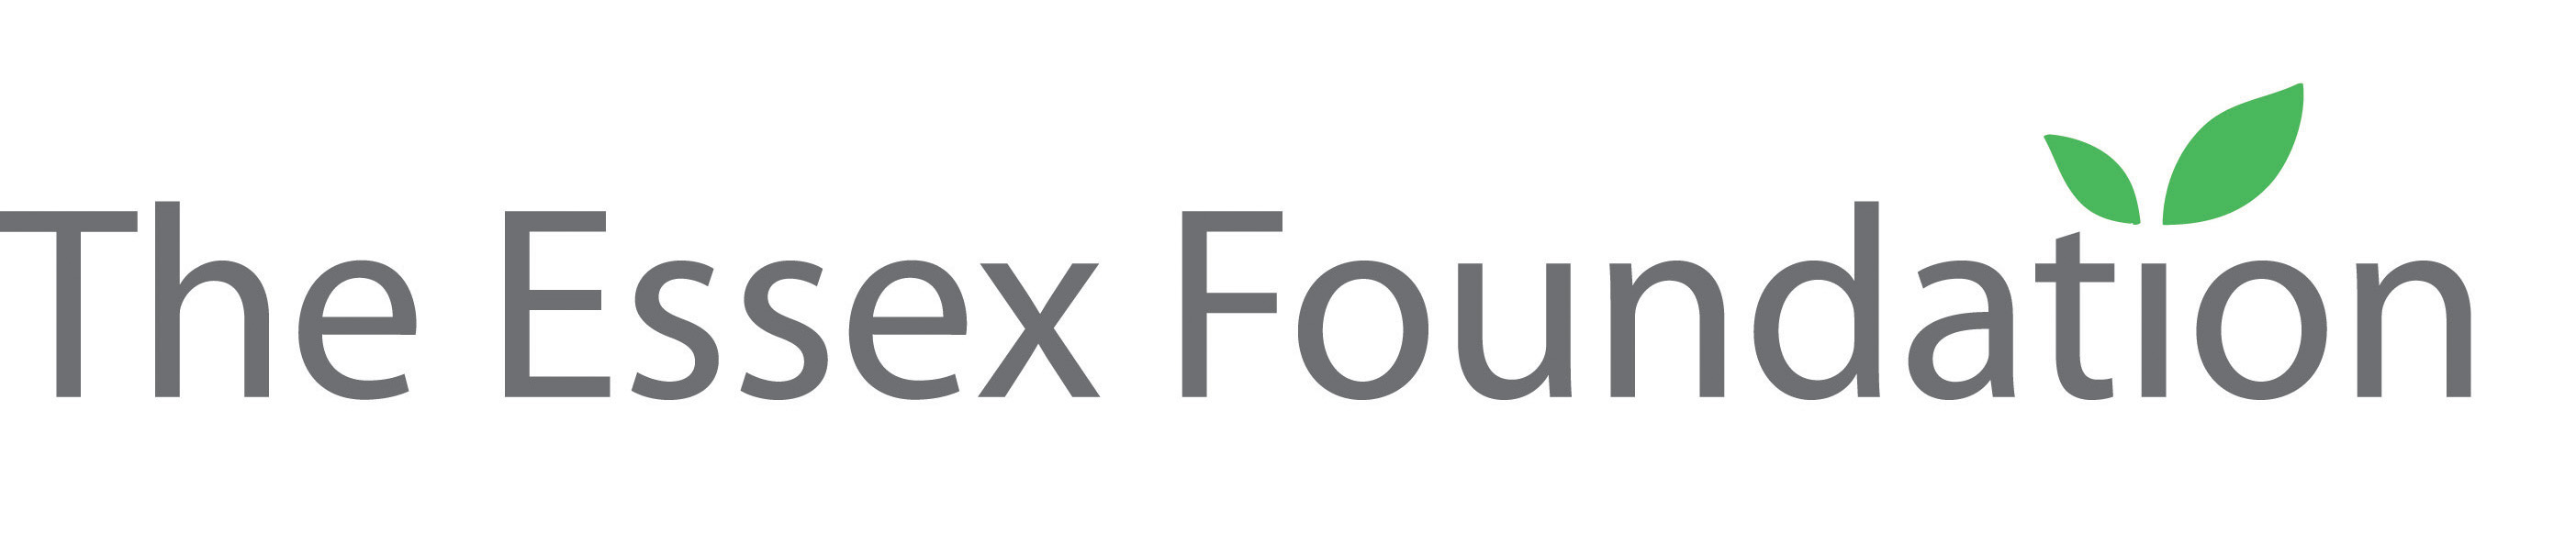 The Essex Foundation